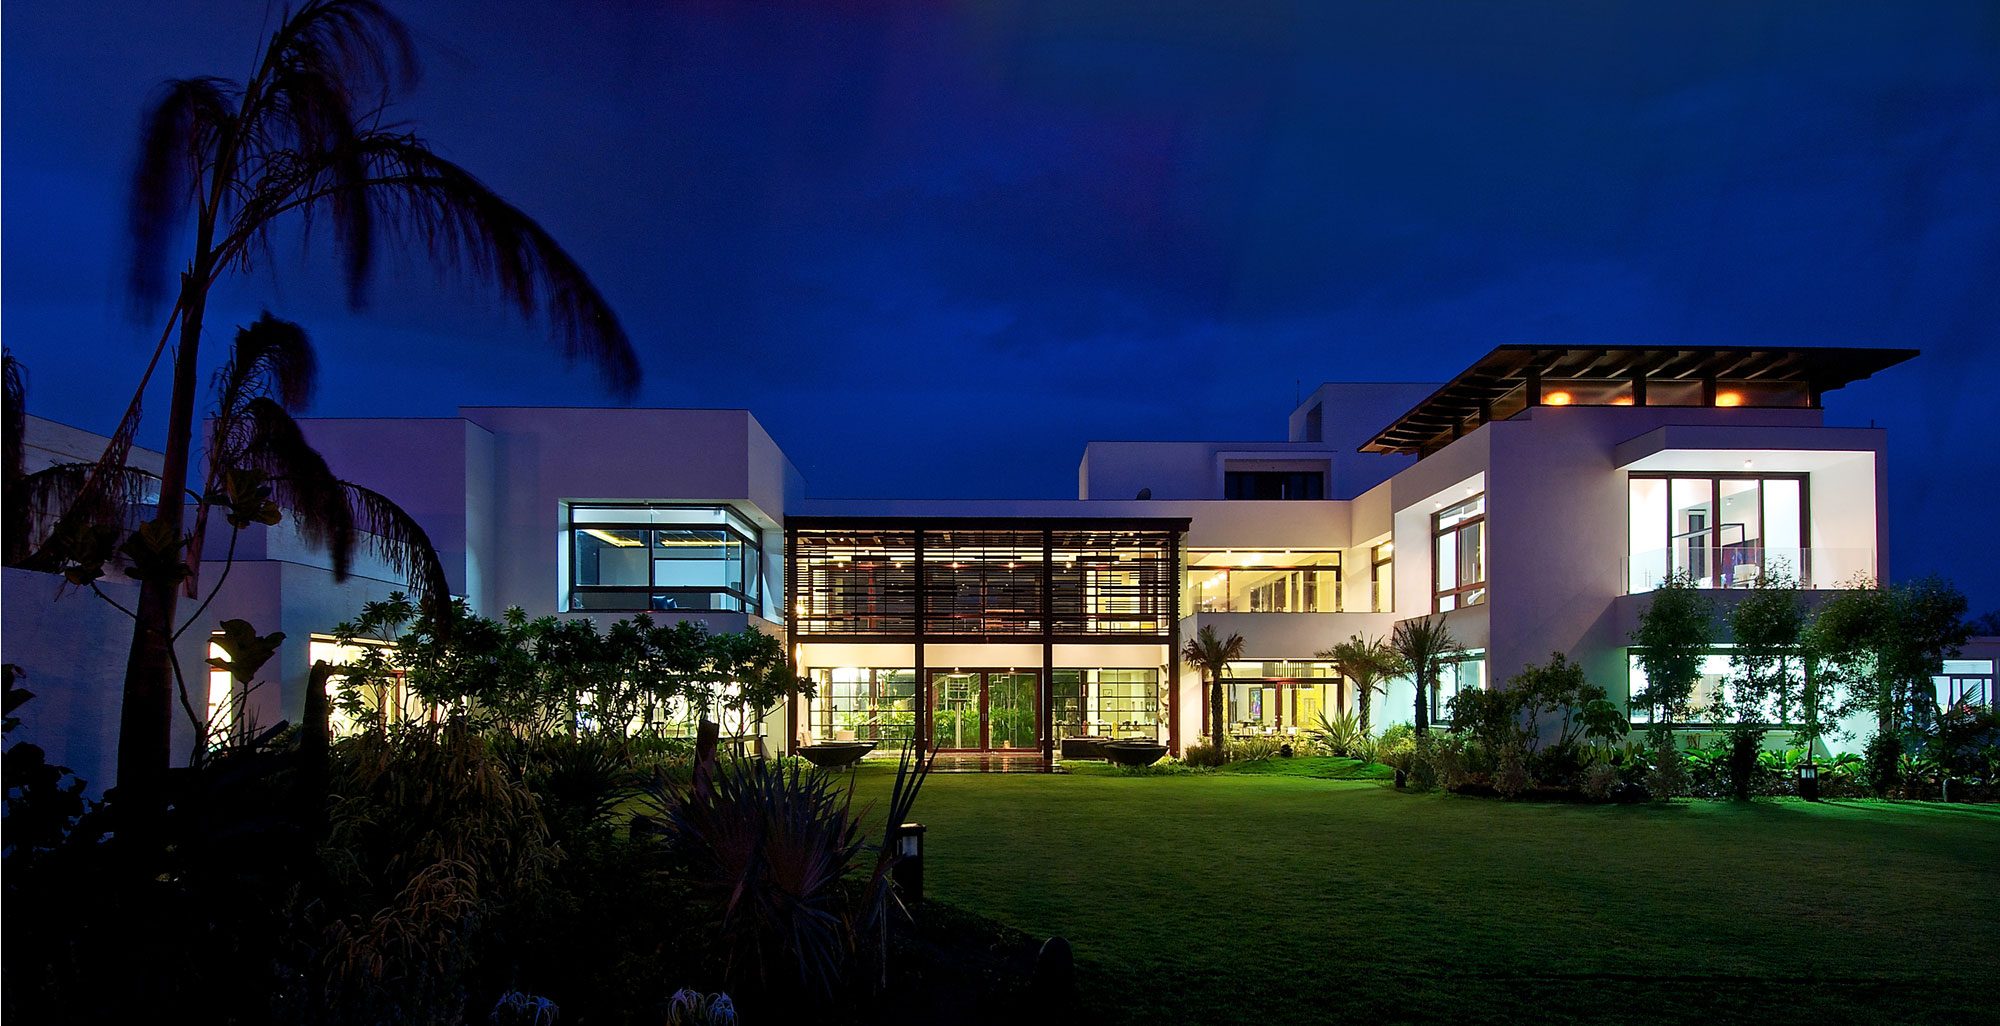 The Frill House By Hiren Patel Architects